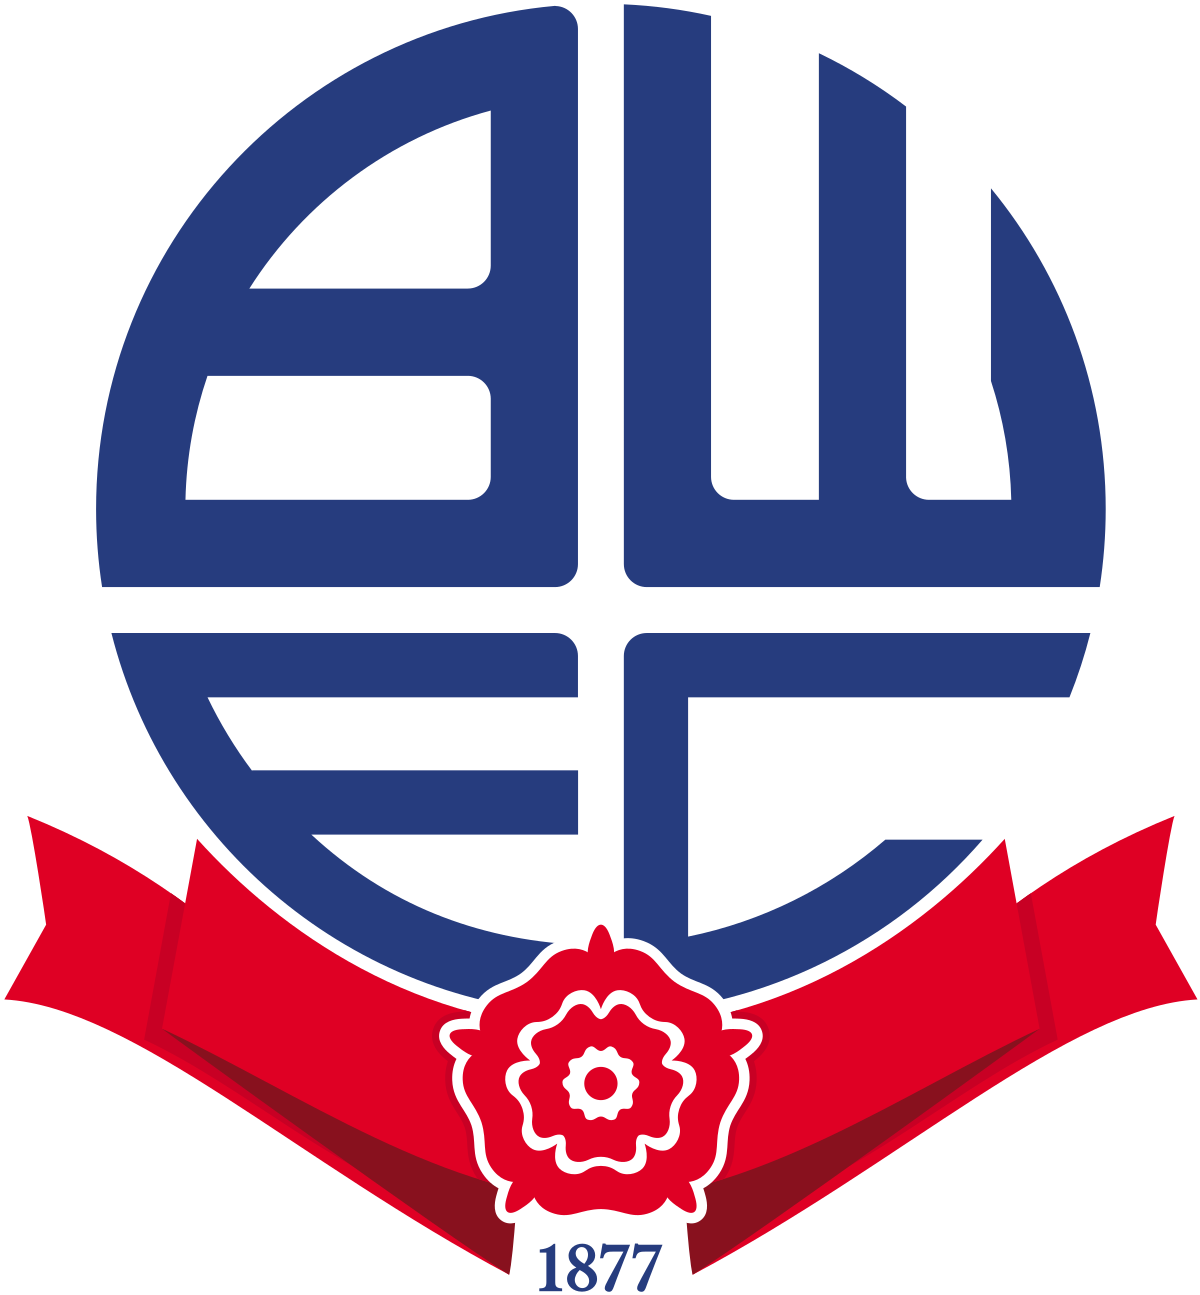 Turkey football federation crest 256 x 256 png image. Bolton wanderers f c